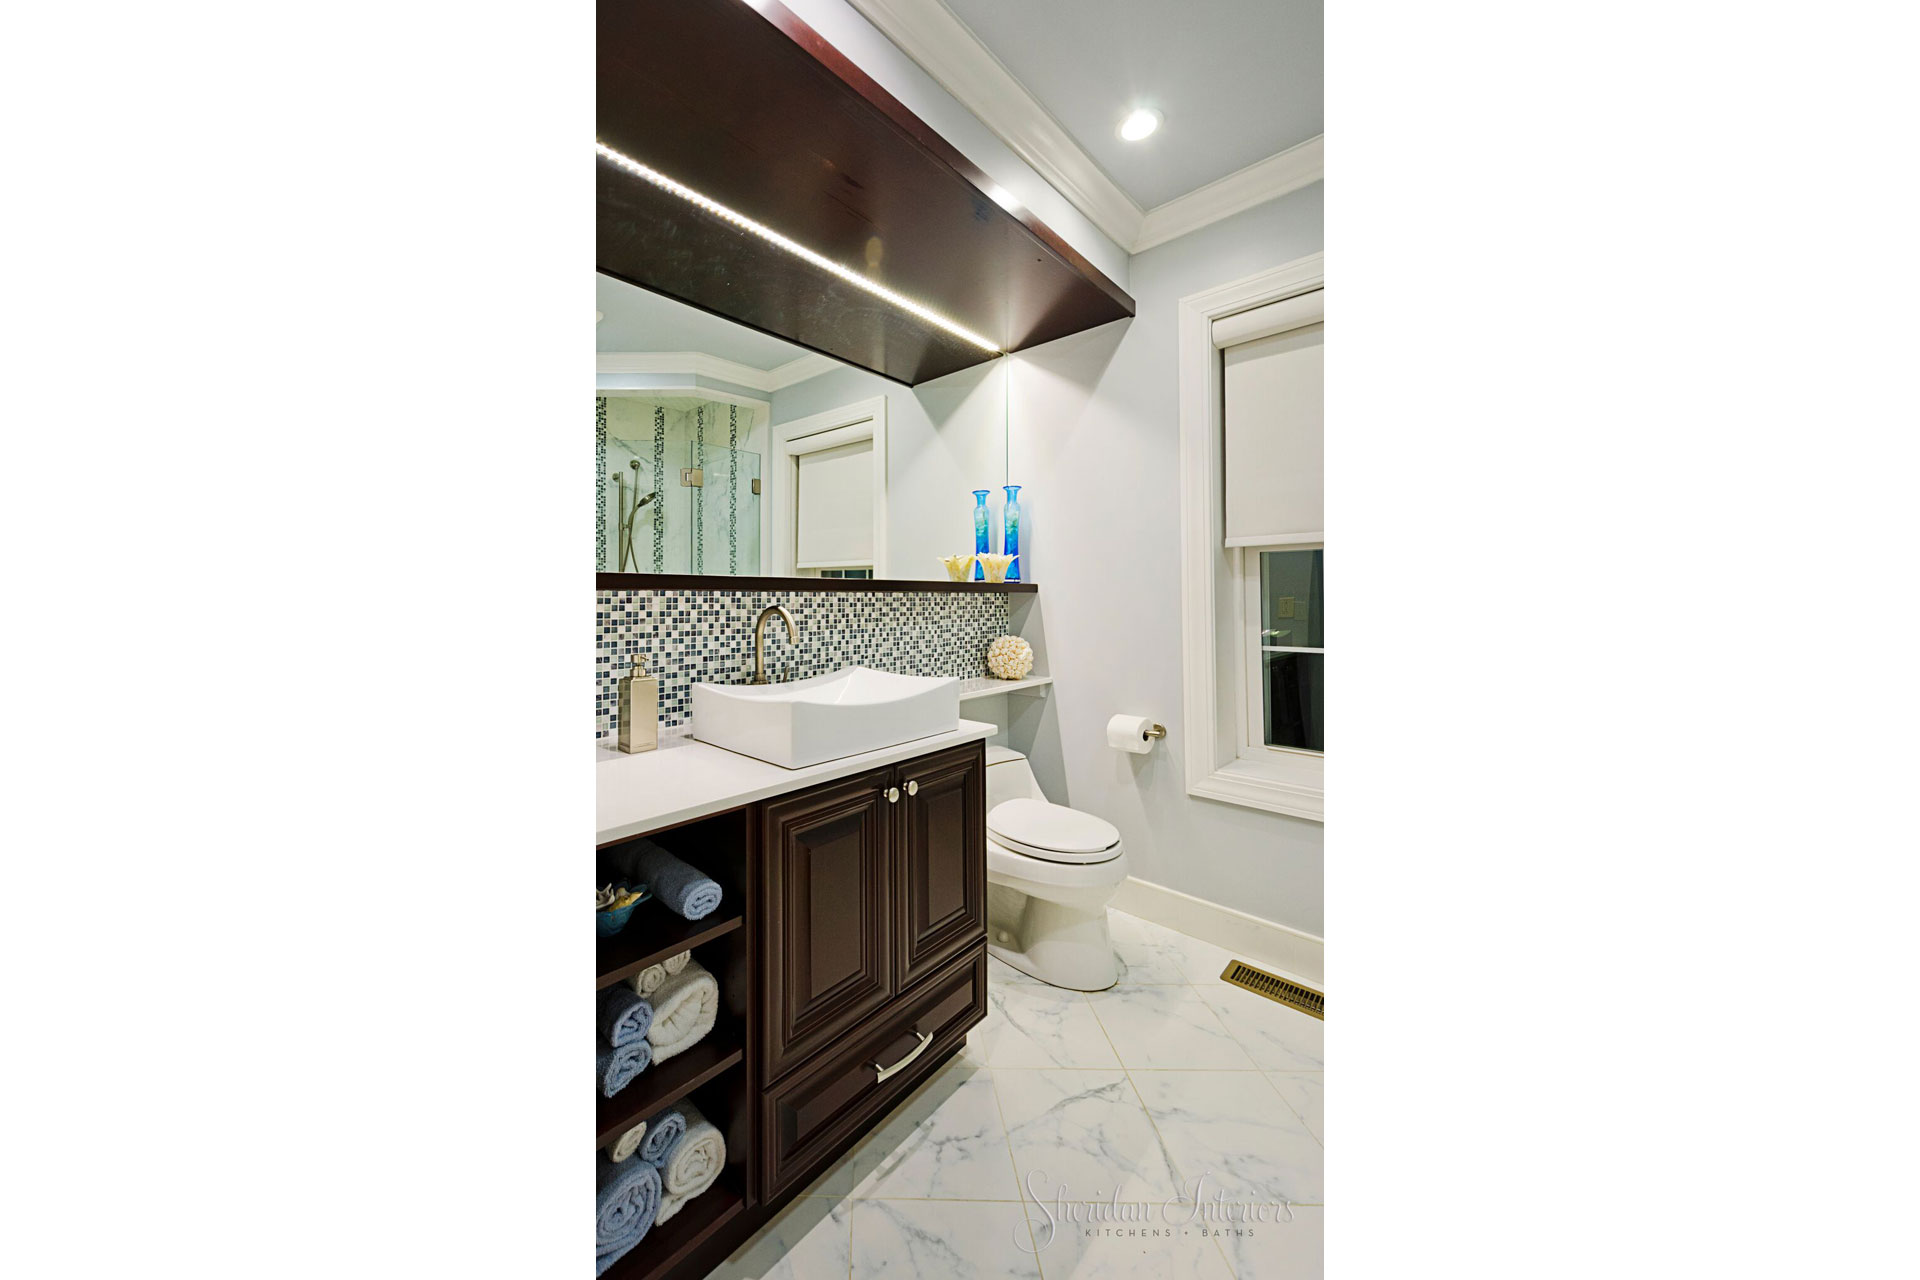 contemporary bathroom, transitional bathroom, marble floors, mosaic backsplash in bathroom, Modern Bathroom with Vessel Sink - Sheridan Interiors, sheridan interiors kitchens and baths, interior designer cornwall, interior designer ottawa, bathroom designer cornwall, bathroom designer ottawa